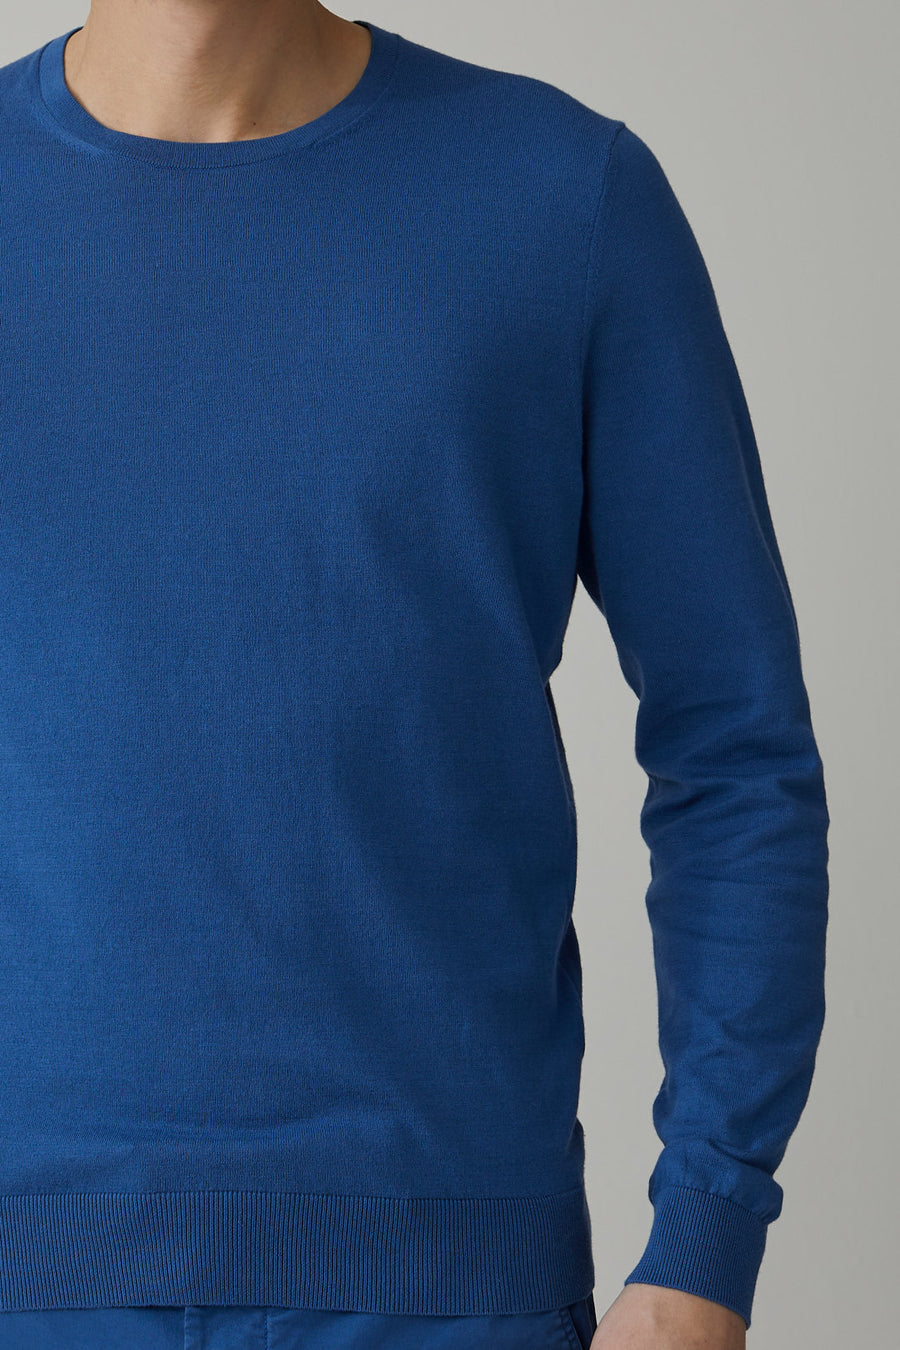 Cotton Fine Knit Sweater - Fading Indigo